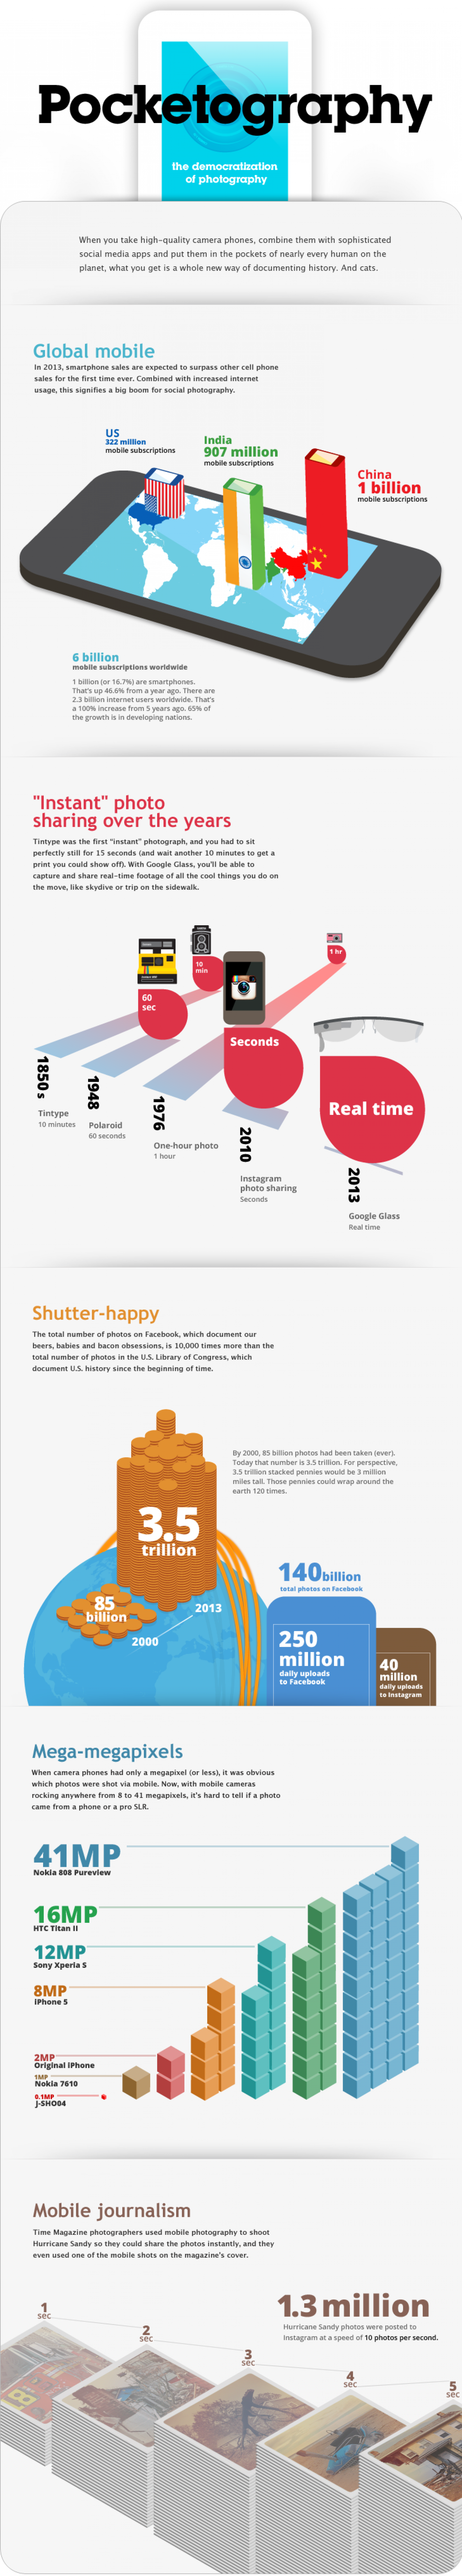 Pocketography: the democratization of photography Infographic